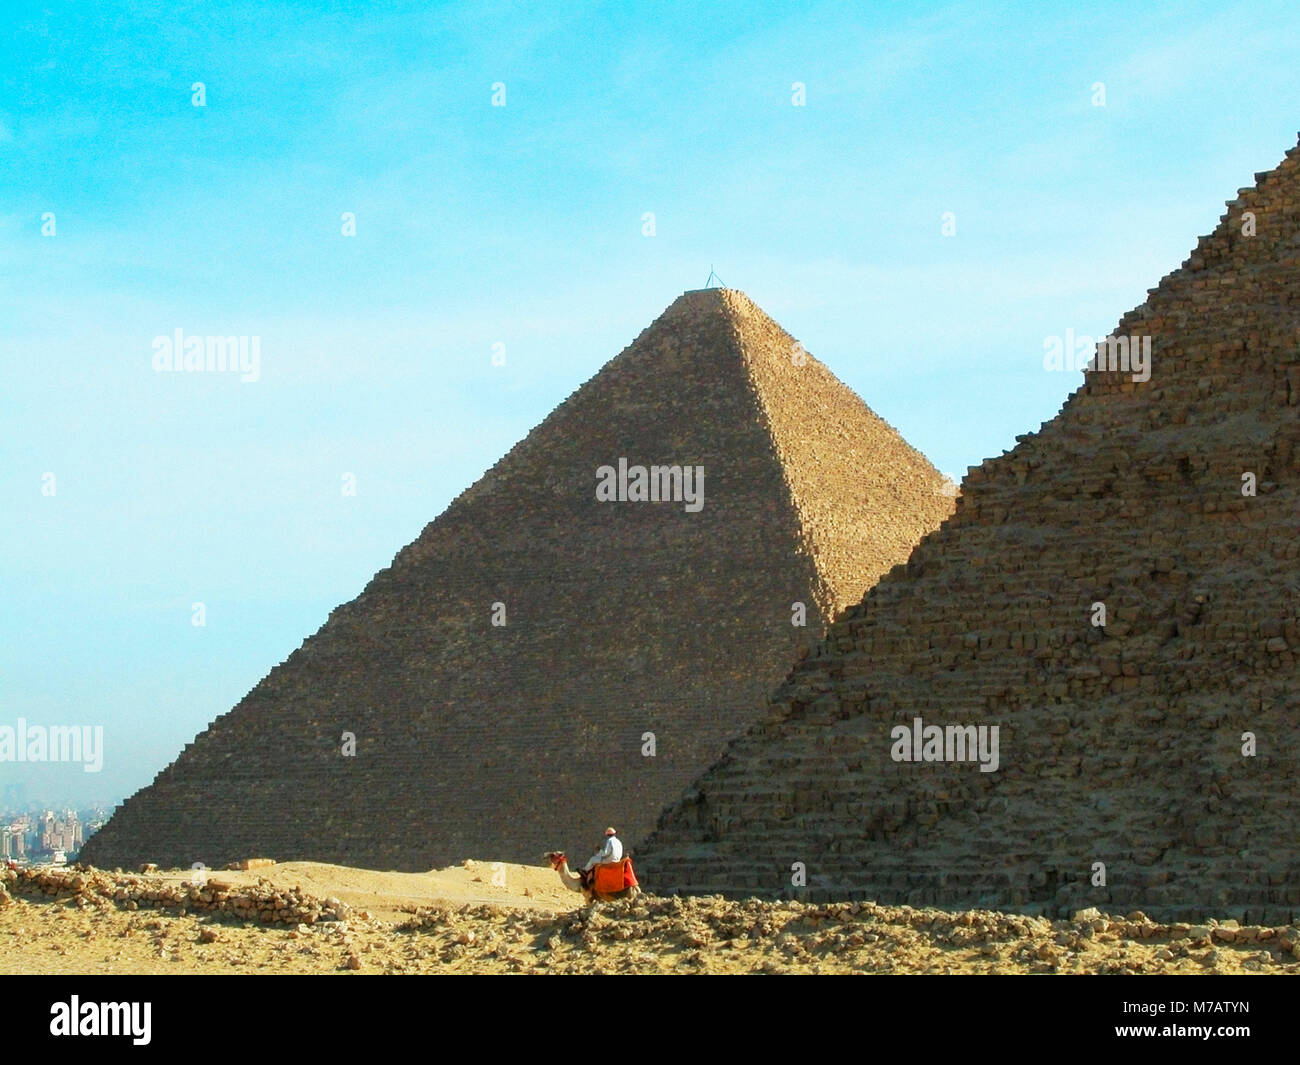 Man on a camel in front of the pyramids, Giza Pyramids, Giza, Cairo, Egypt - Stock Image